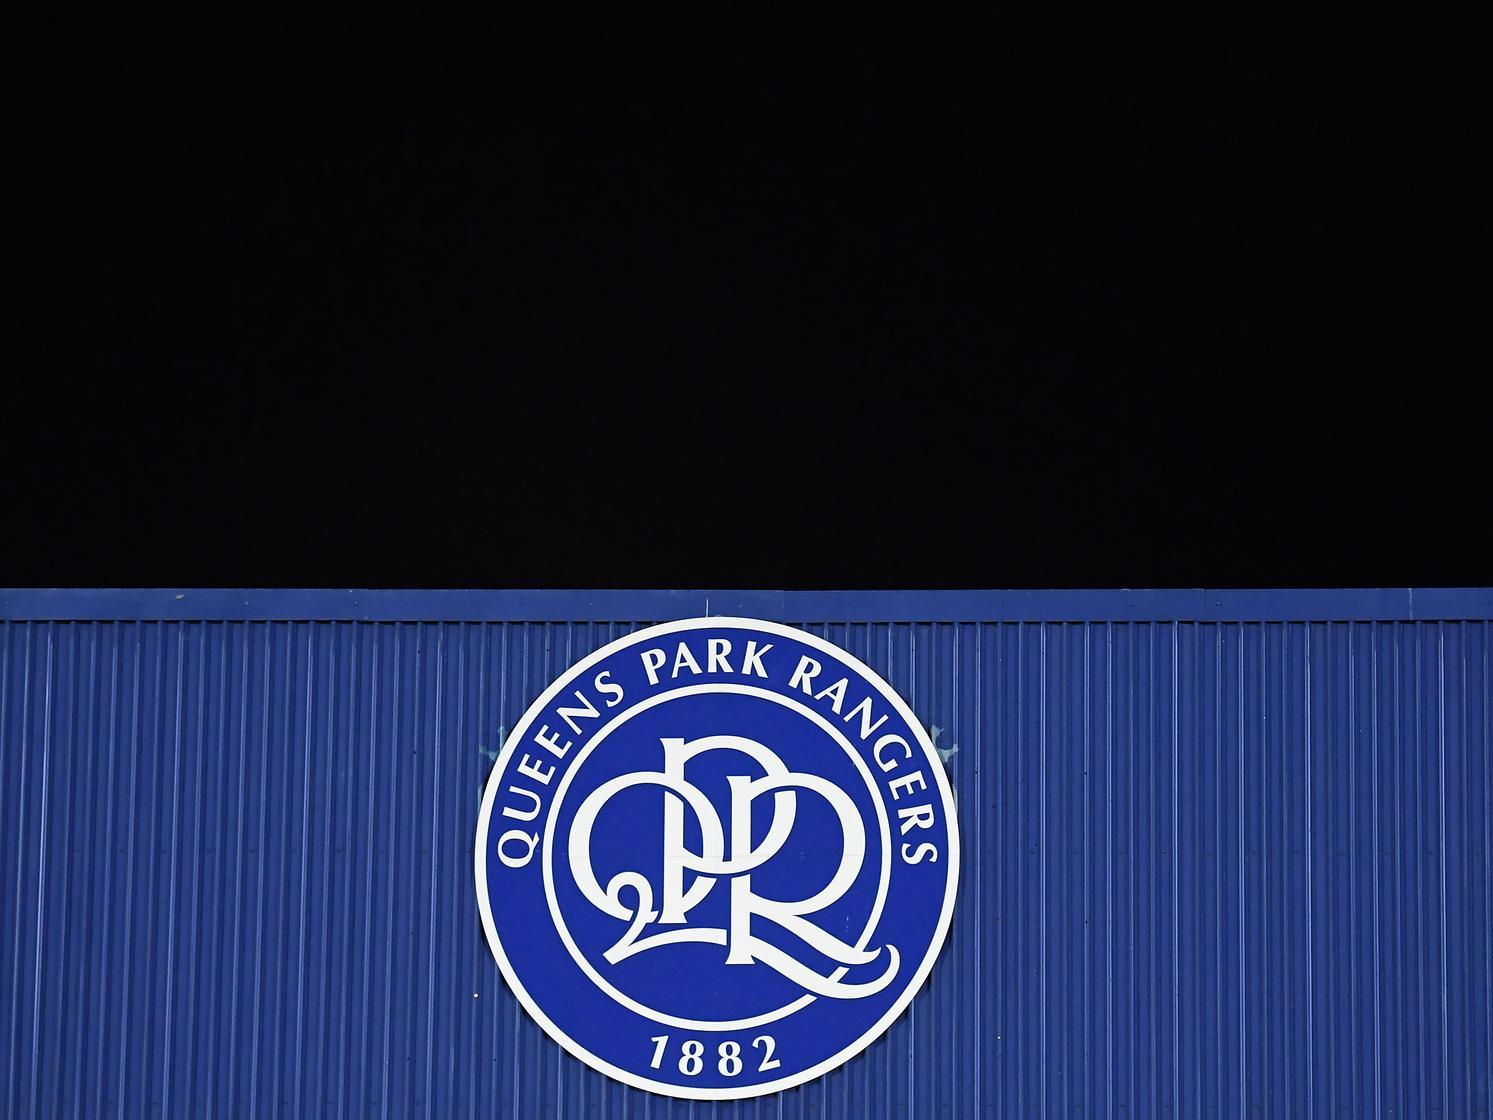 New time-slot with Sky cameras heading for Leeds United's January clash at QPR